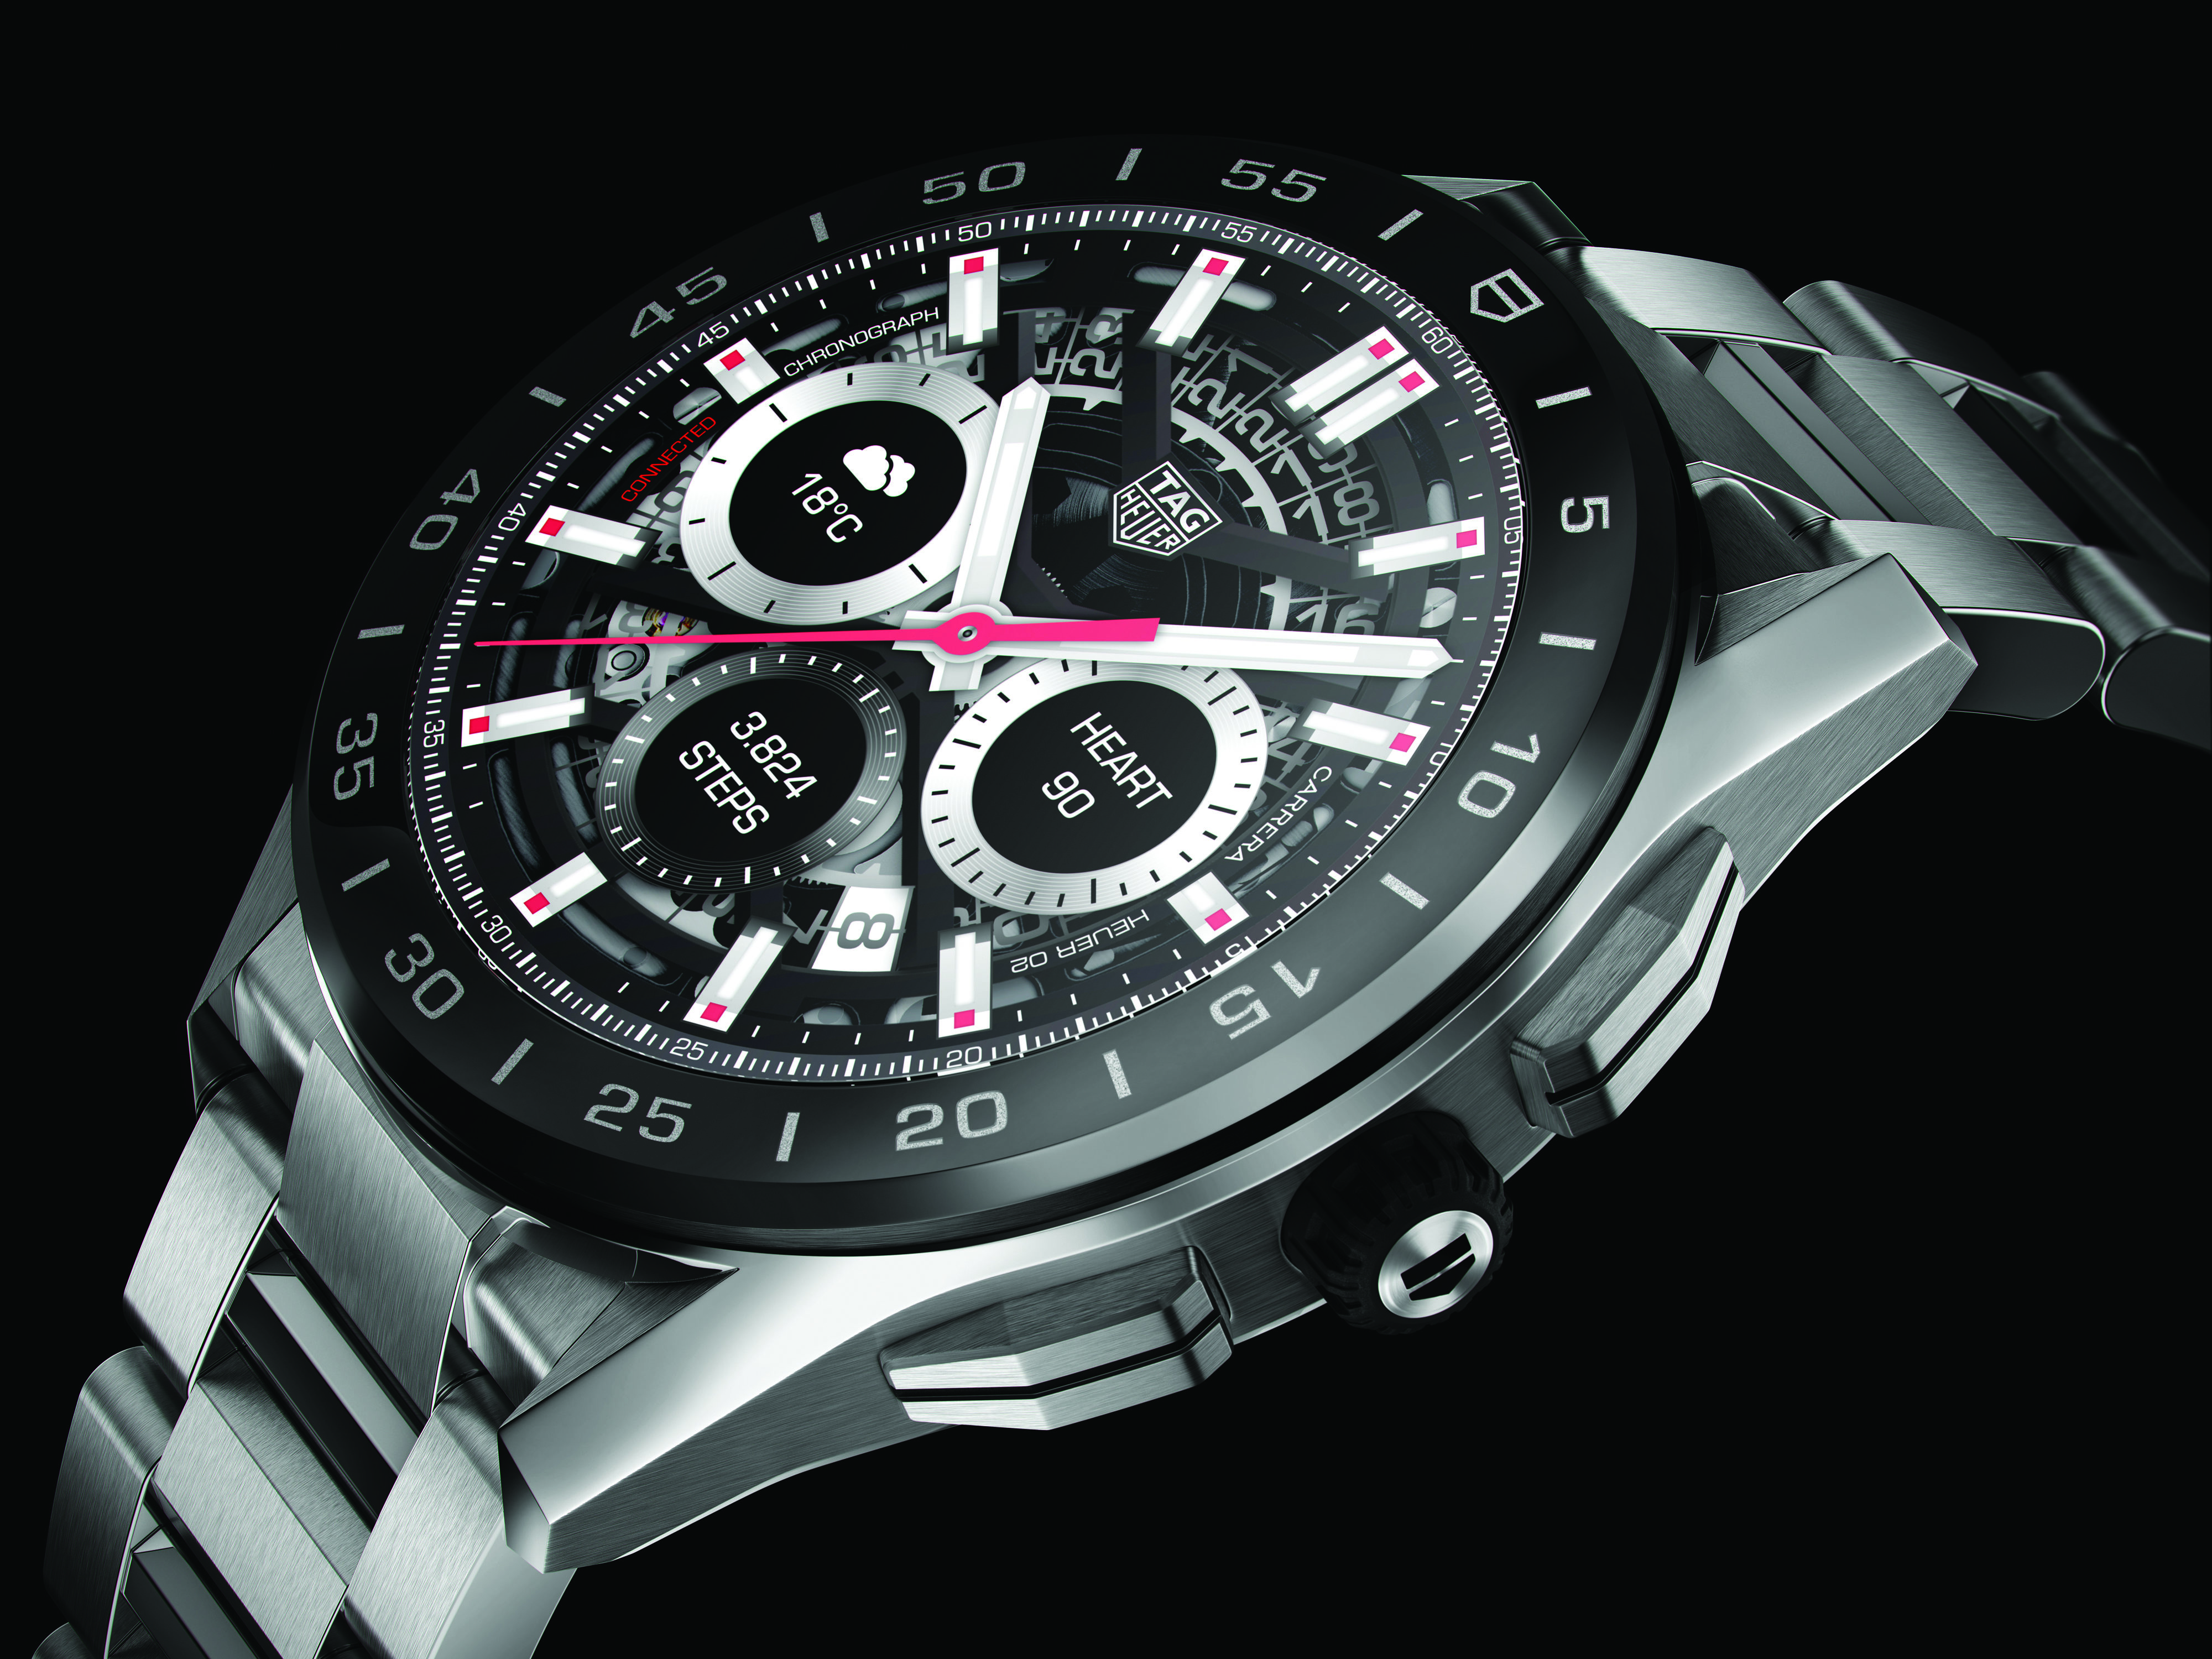 The New TAG Heuer Connected Represents Connectivity And Design Excellence